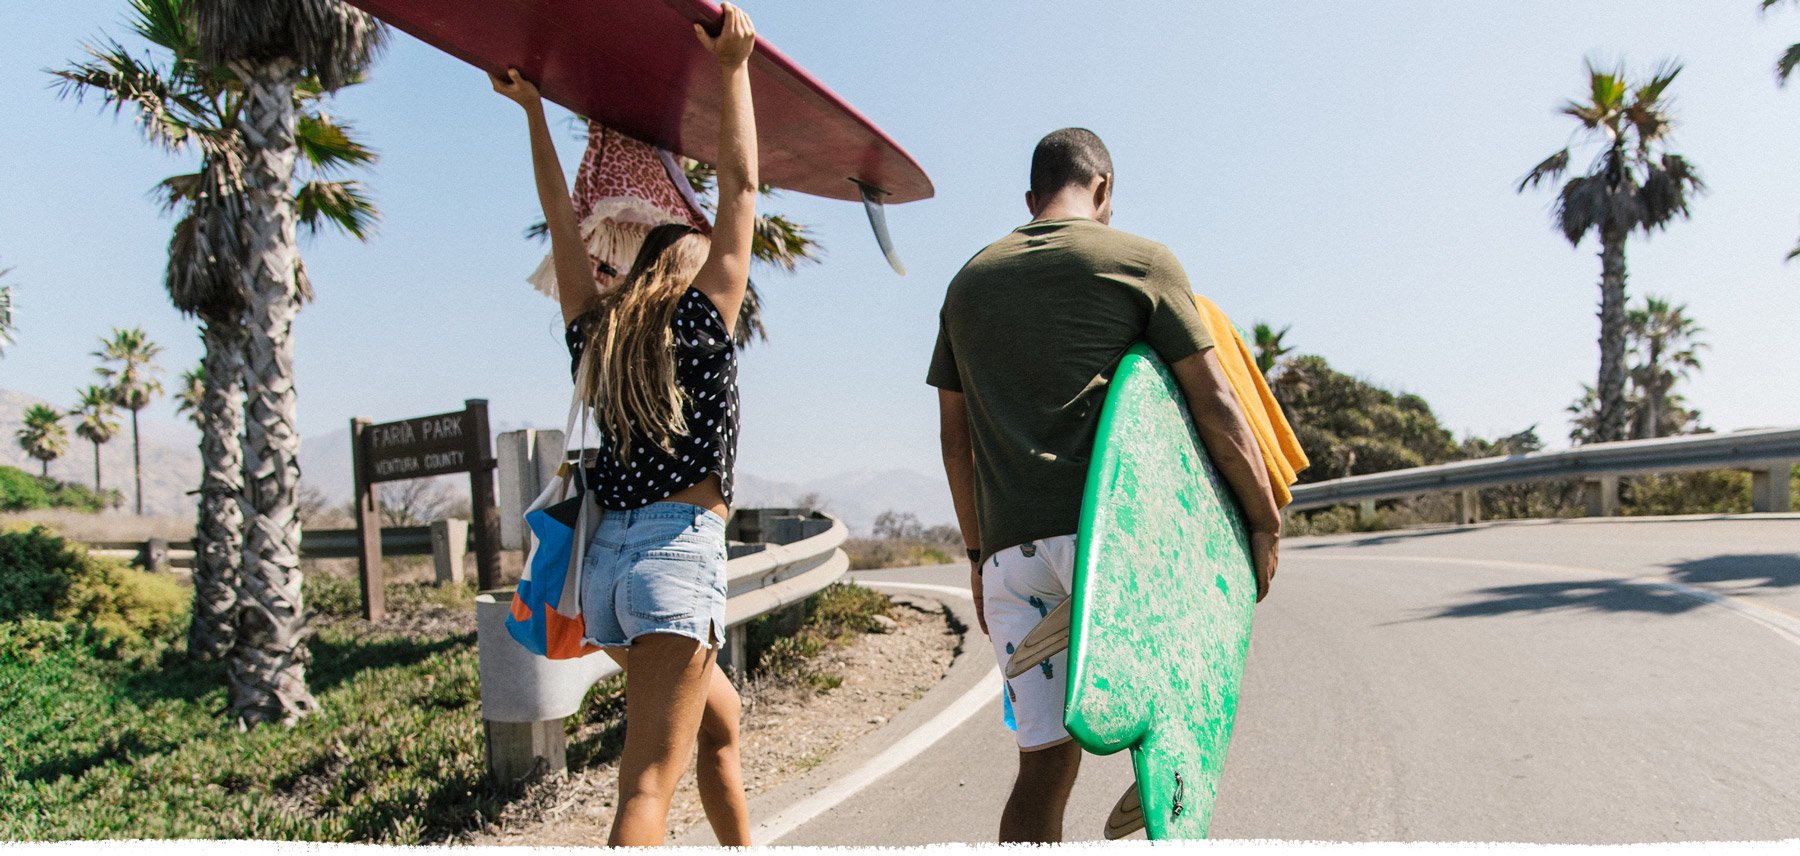 Man and woman carrying surfboards.